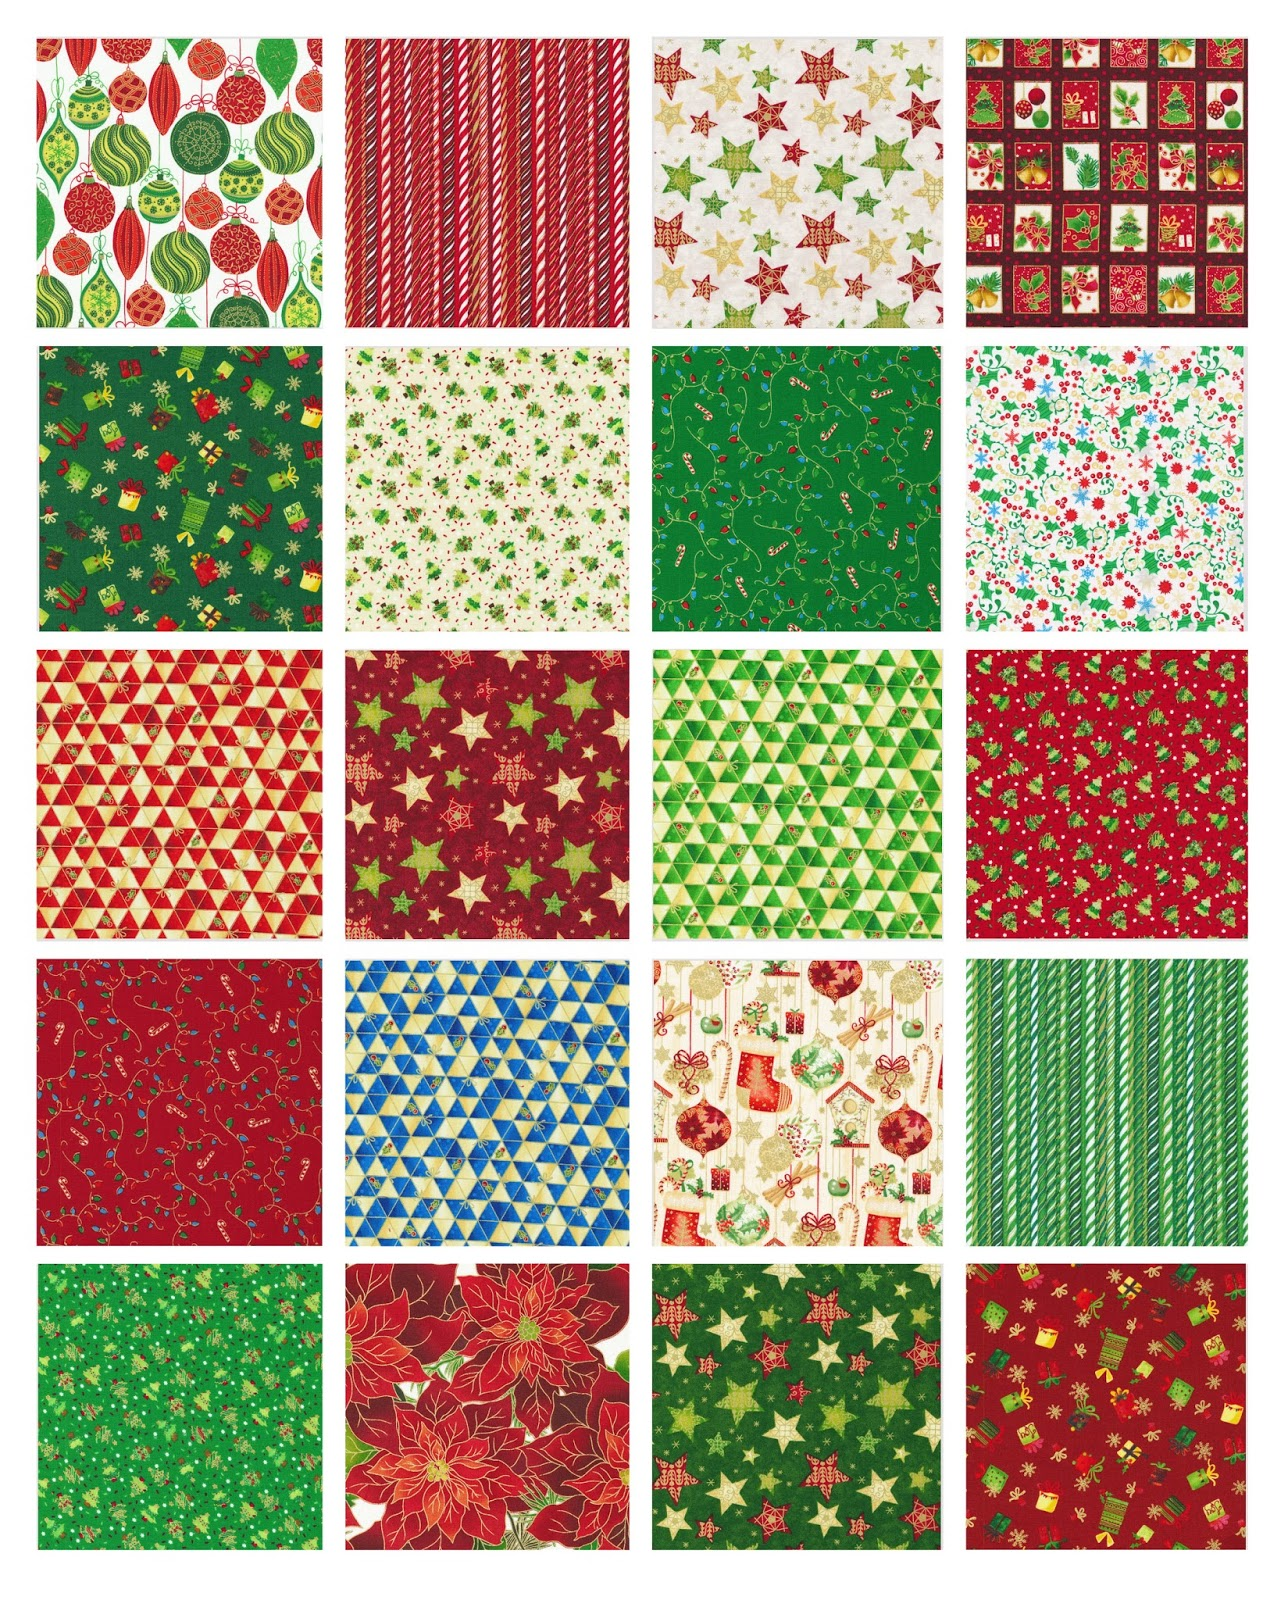 Inspired by fabric home for the holidays seasons greetings fabrics see the entire seasons greetings 2015 collection here m4hsunfo